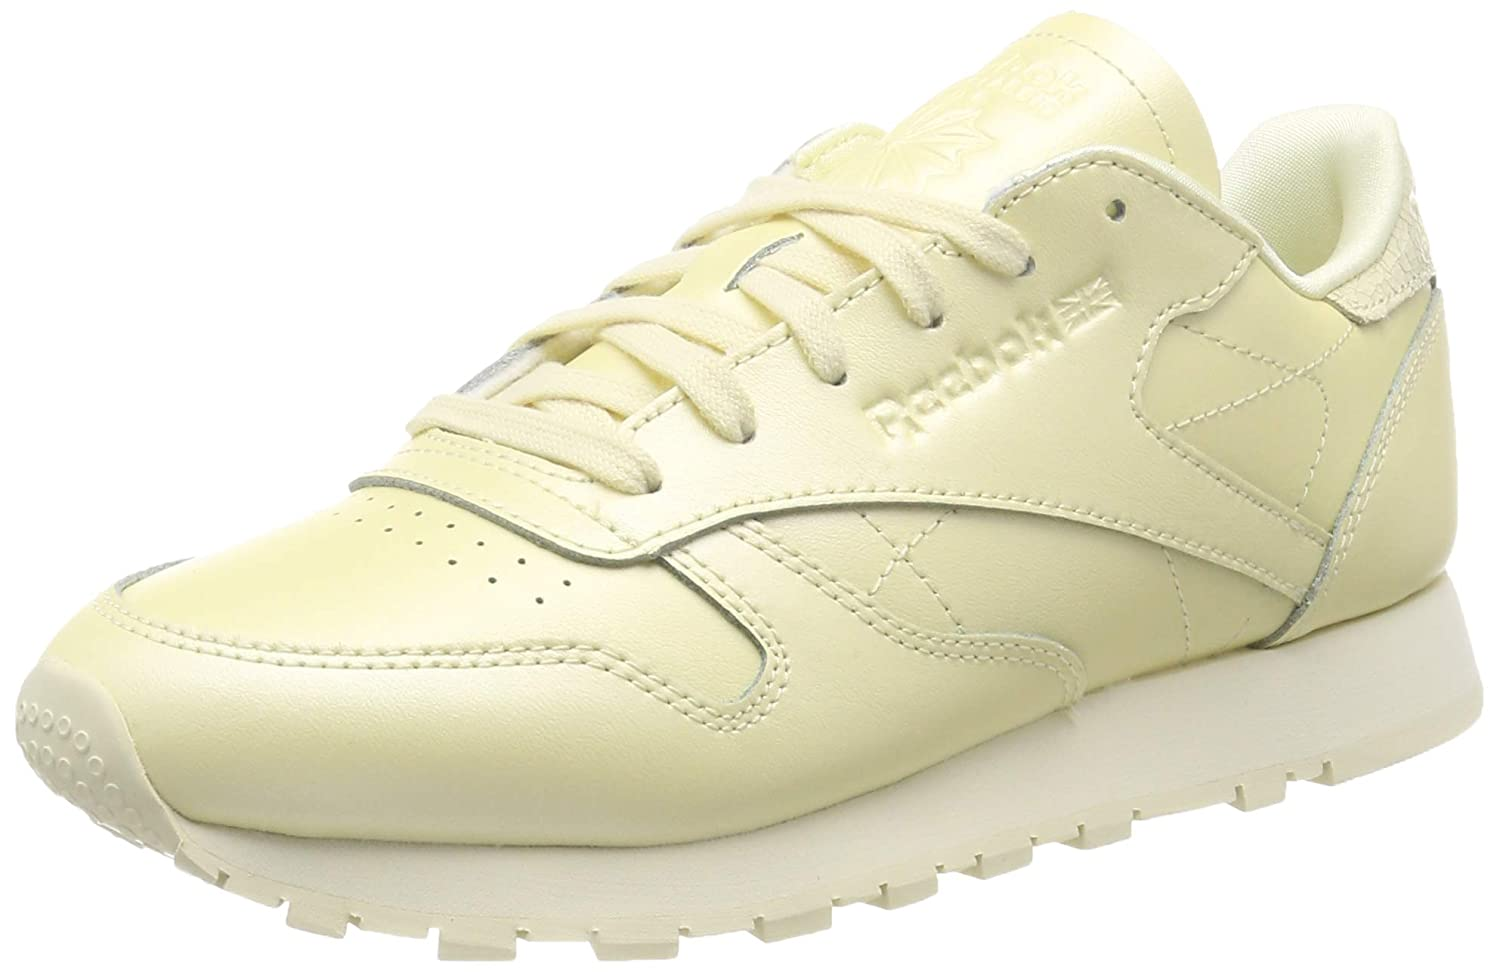 Reebok EU|Jaune Cl LTHR, Chaussures de Gymnastique Femme 40.5 EU|Jaune Reebok (Mid/Washed Yellow 000) 9cd47b